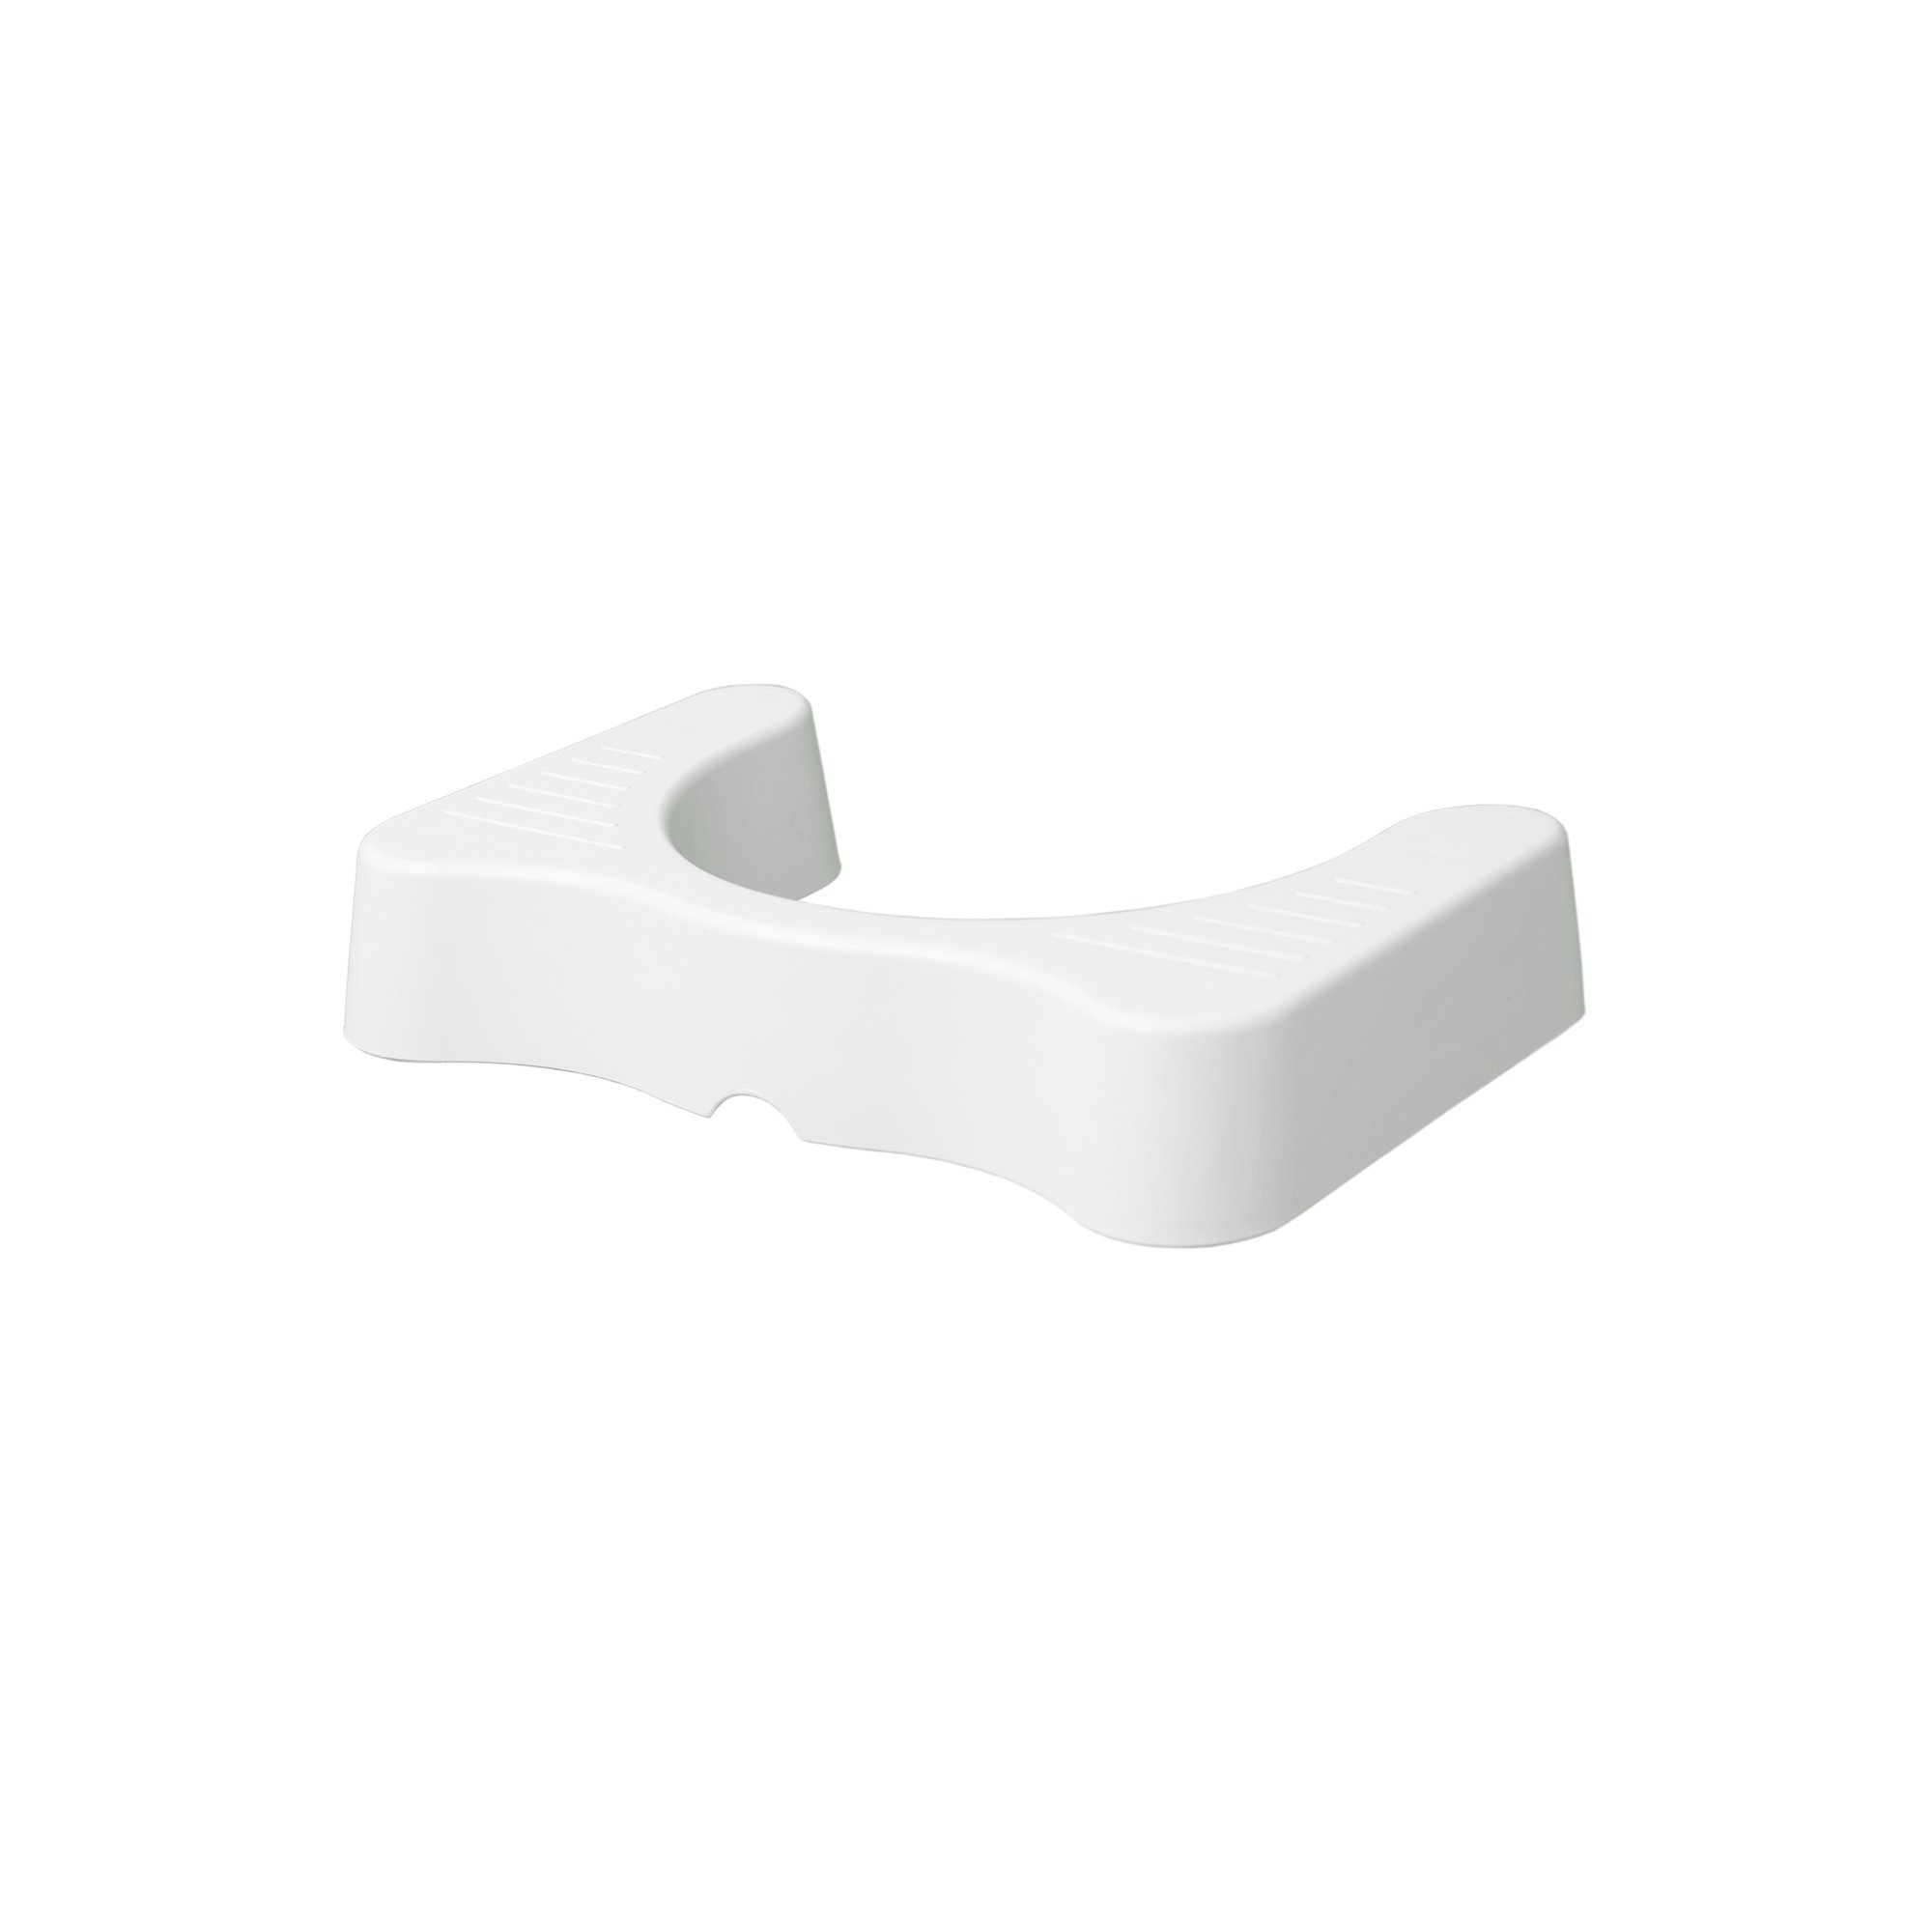 Squatty Potty The Original Bathroom Toilet Stool - Adjustable 2.0, Convertible to 7 inch or 9 inch Height, White by Squatty Potty (Image #3)